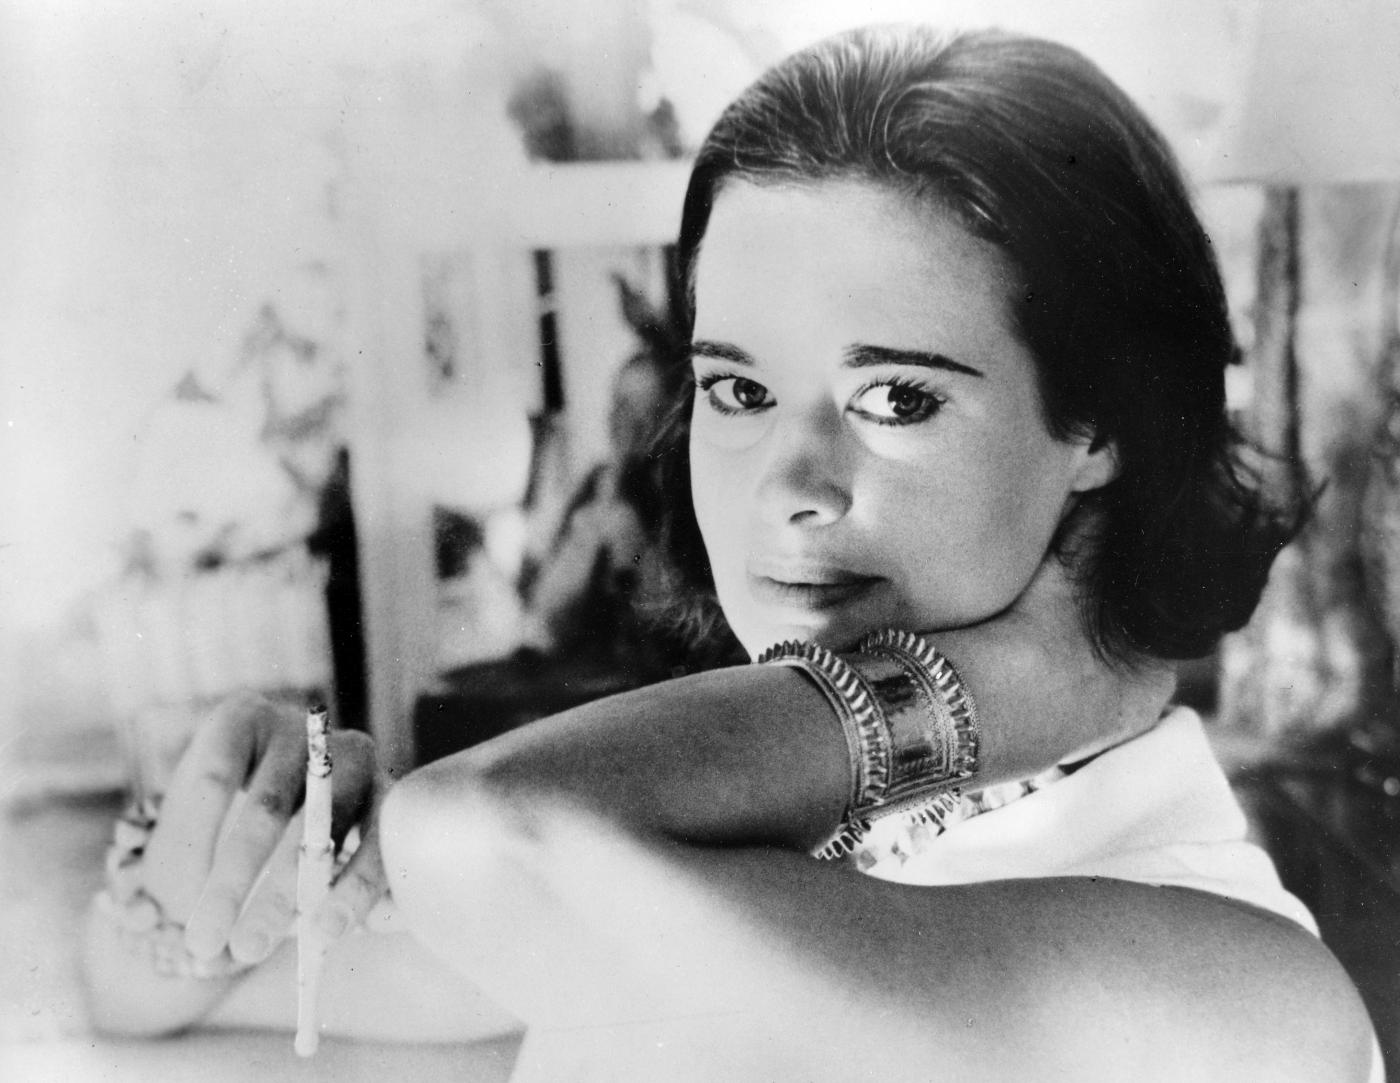 Gloria Vanderbilt, American heiress and jeans queen, has